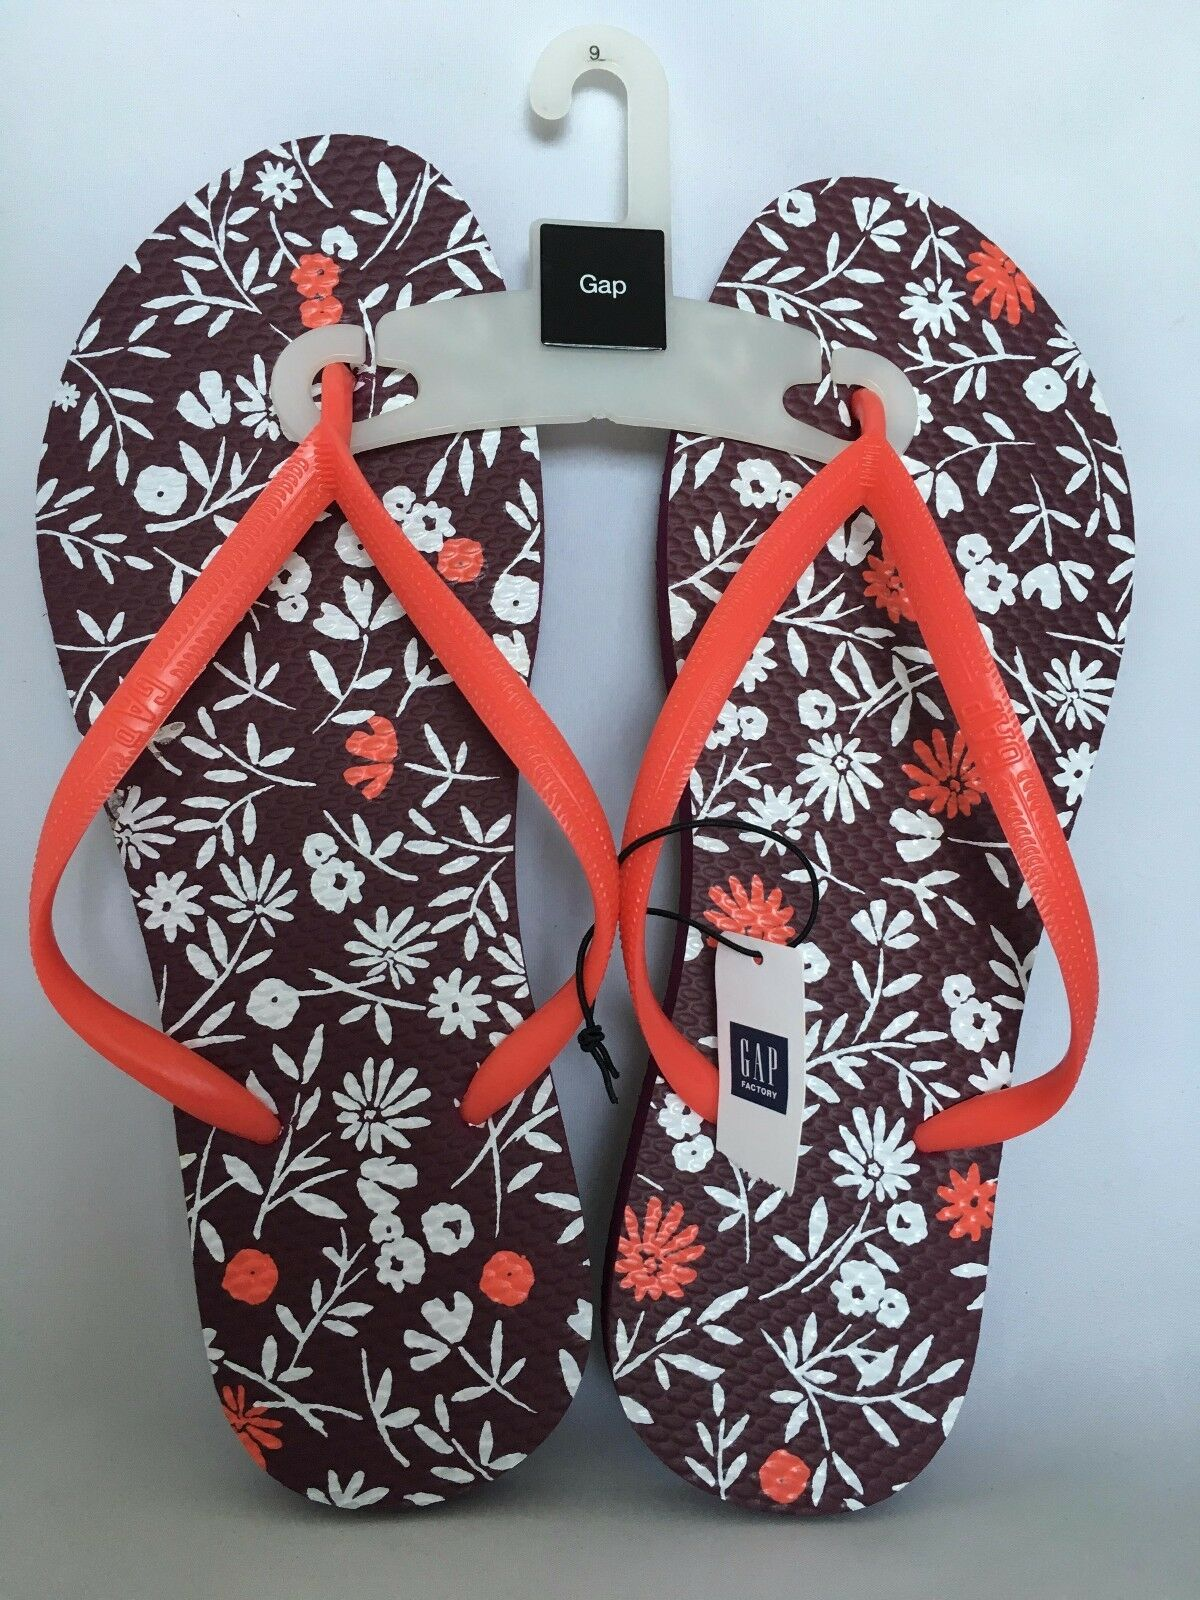 GAP WOMEN'S MULTI-COLOR WITH FLORAL SIZE PATTERN FLIP FLOPS SANDALS SIZE FLORAL 9 84a558